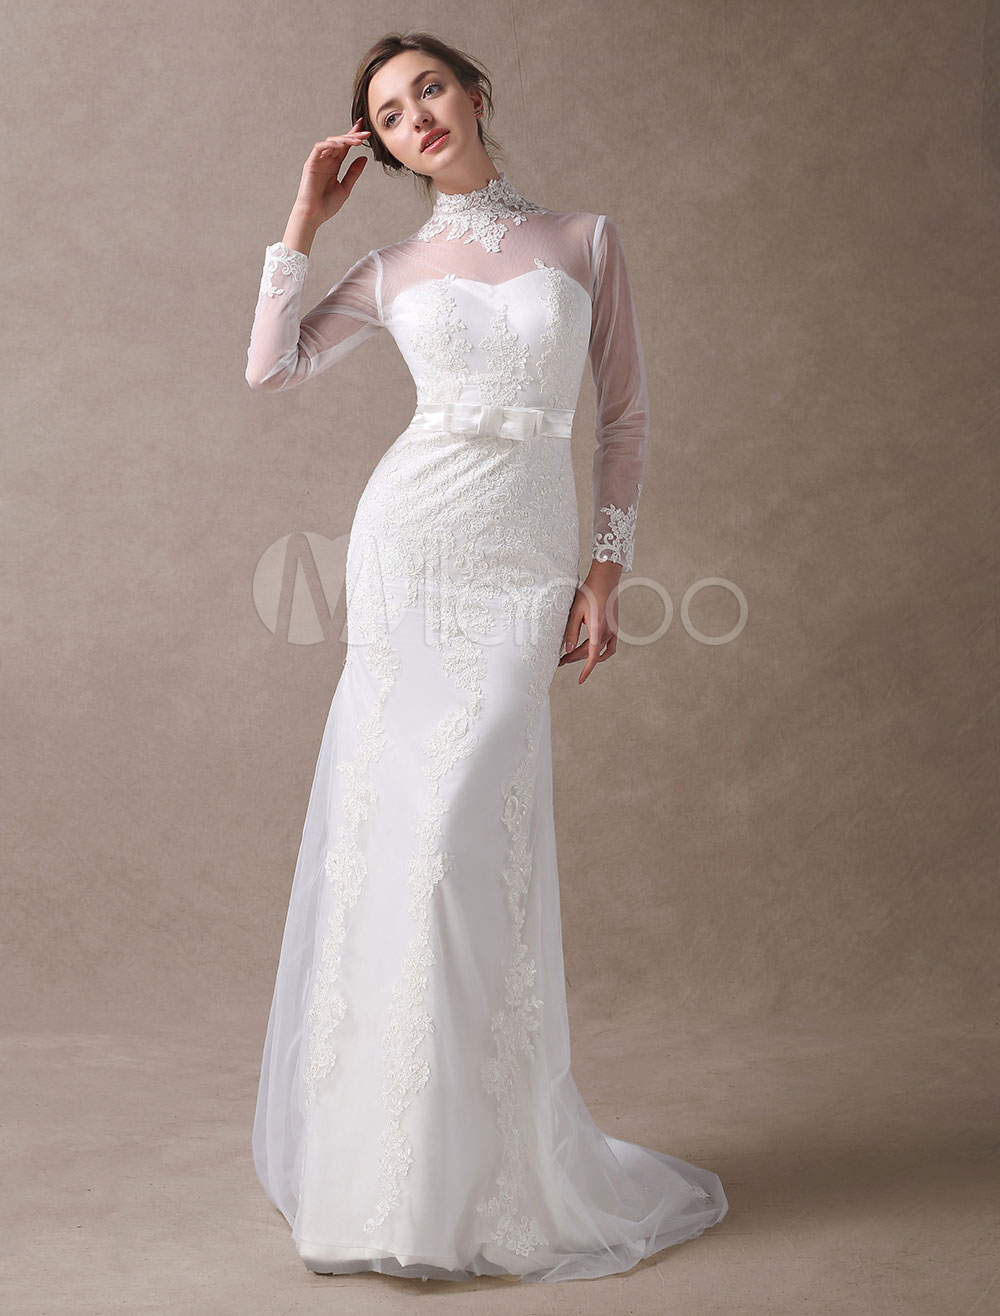 Buy Ivory Wedding Dresses Mermaid Lace High Collar Long Sleeve Illusion Sweetheart Neck Bow Sash Wedding Gowns With Train for $161.49 in Milanoo store